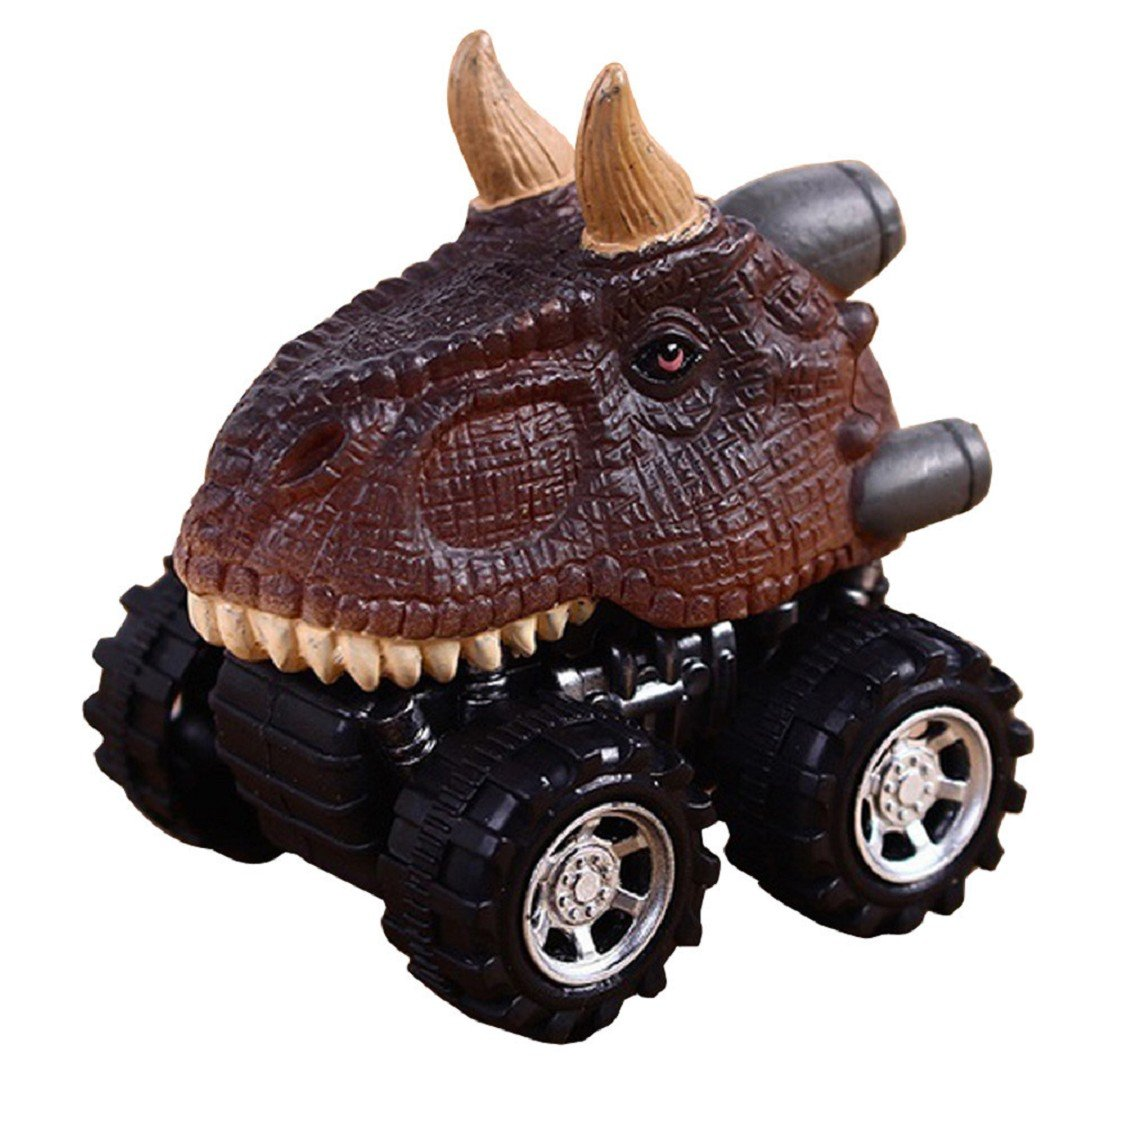 Naladoo Children's Day Gift Toy Dinosaur Model Mini Toy Car Back Of The Car Educational Toy Best Gift for Kids Baby (A) IU32566436436